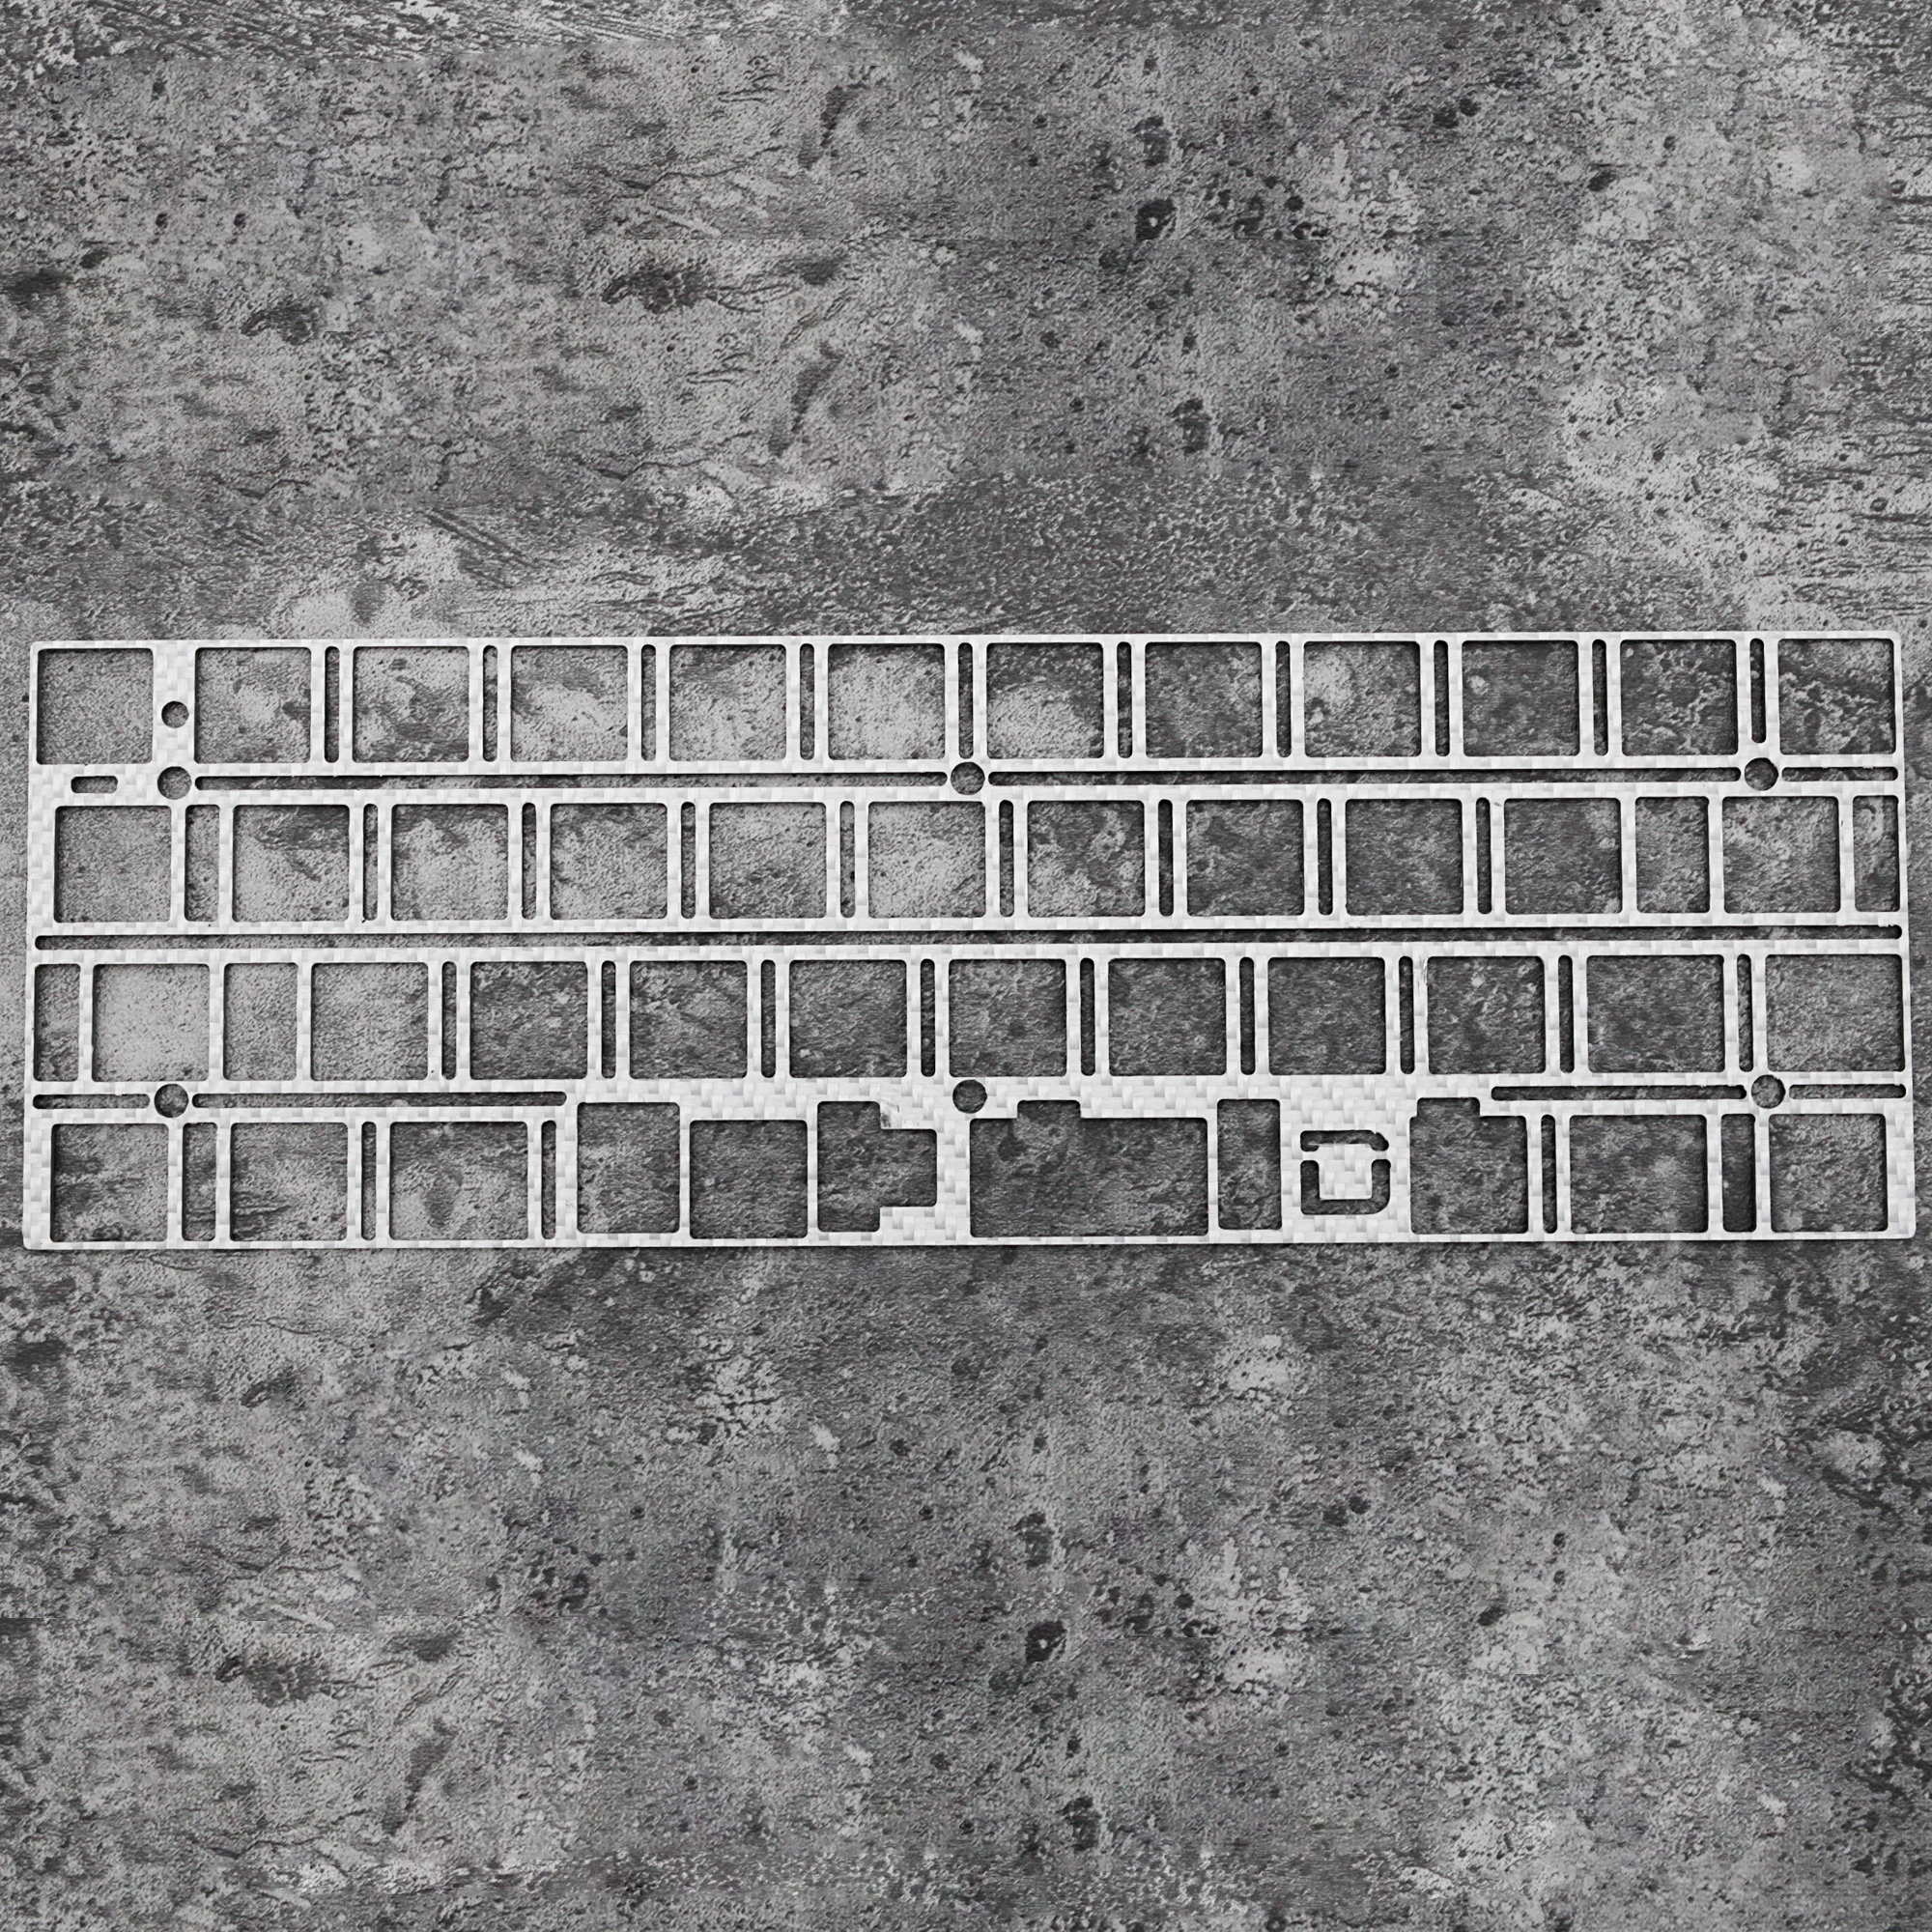 Carbon Fiber Plate For Daisy 40% Custom Keyboard Mechanical Keyboard Plate Support Daisy 40 Alps Or Mx Edition